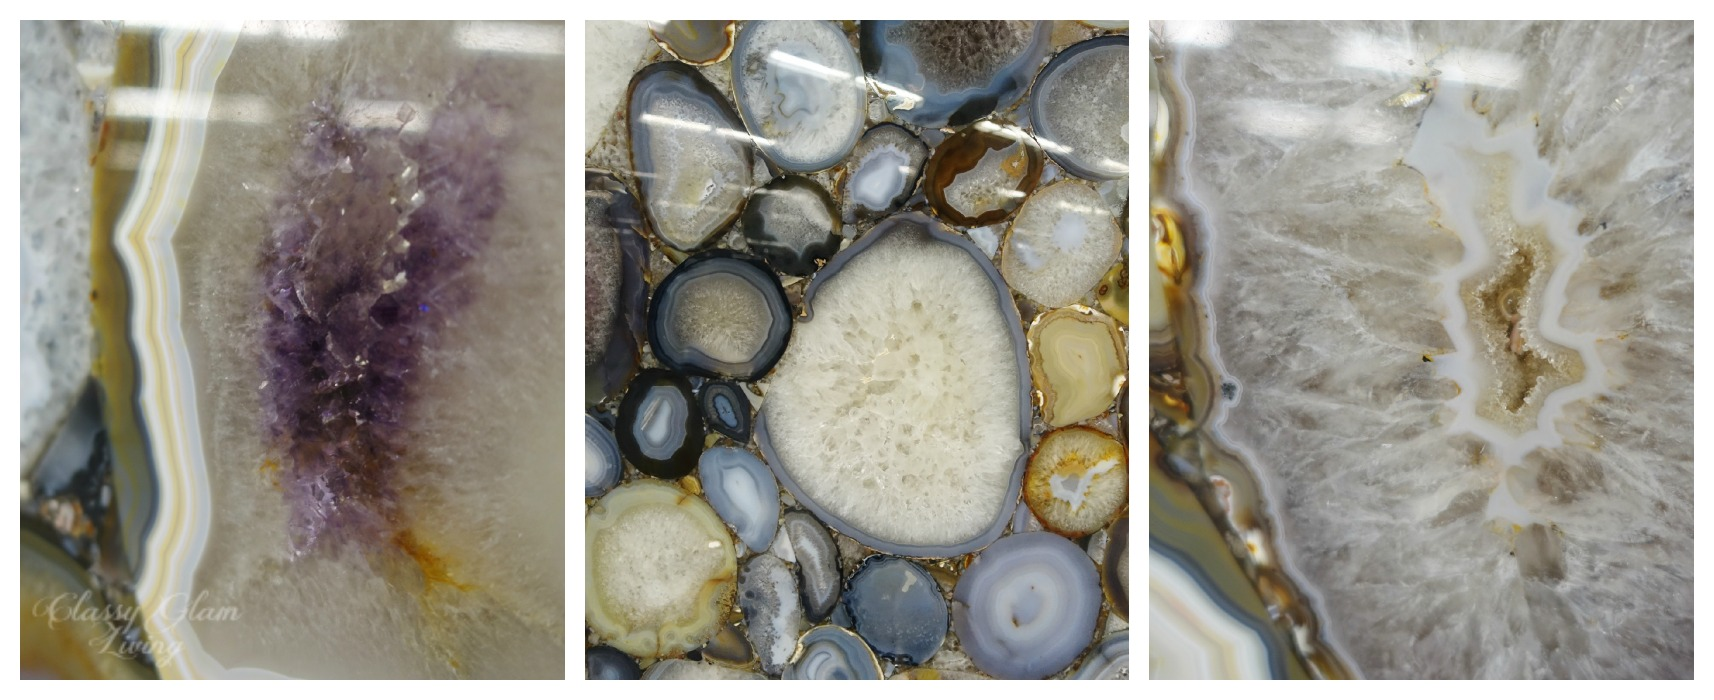 Kitchen Countertops - Marble and Look-alike Alternatives | Closeup of Geodes Slab | Classy Glam Living